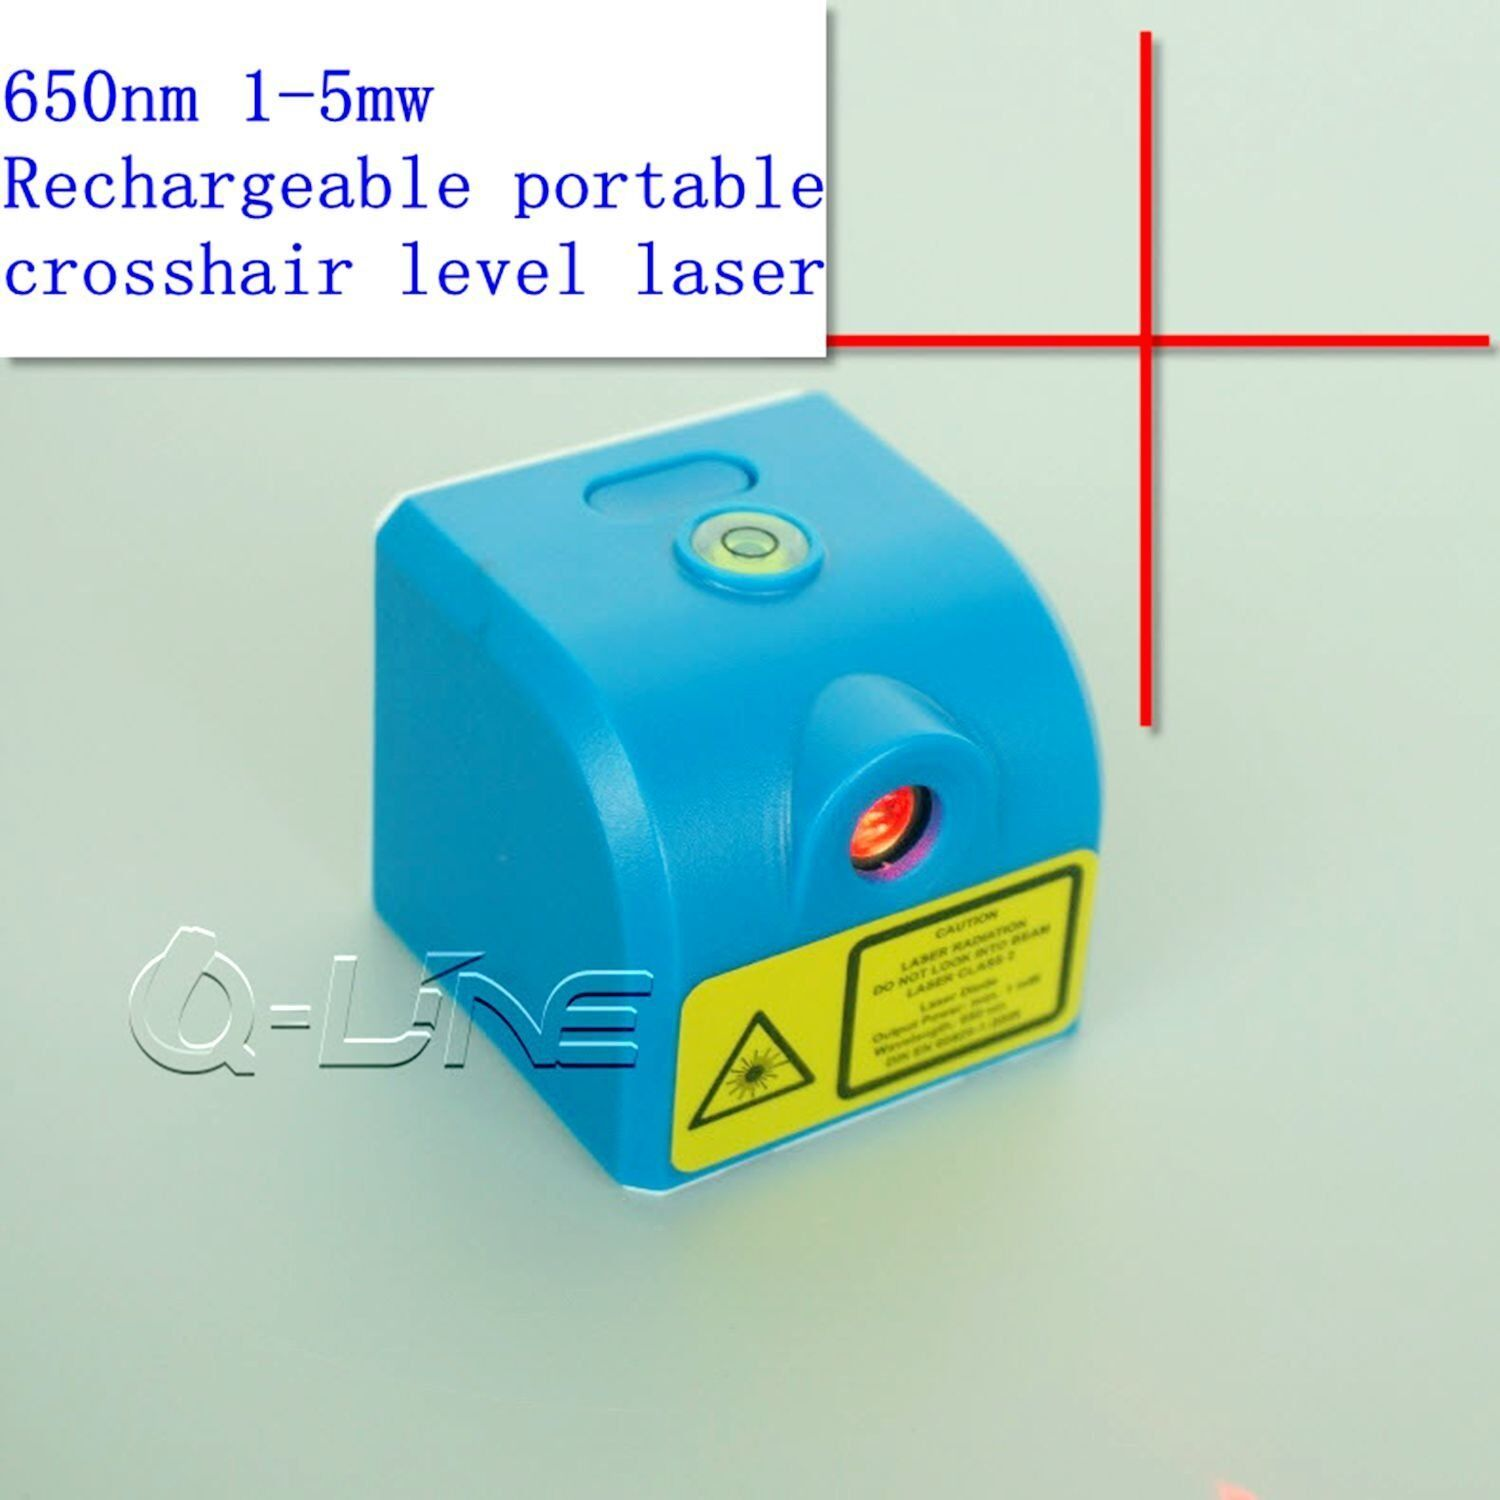 650nm 1mw-5mw Red Cross Laser Module 3.7V w/ USB & Rechargea